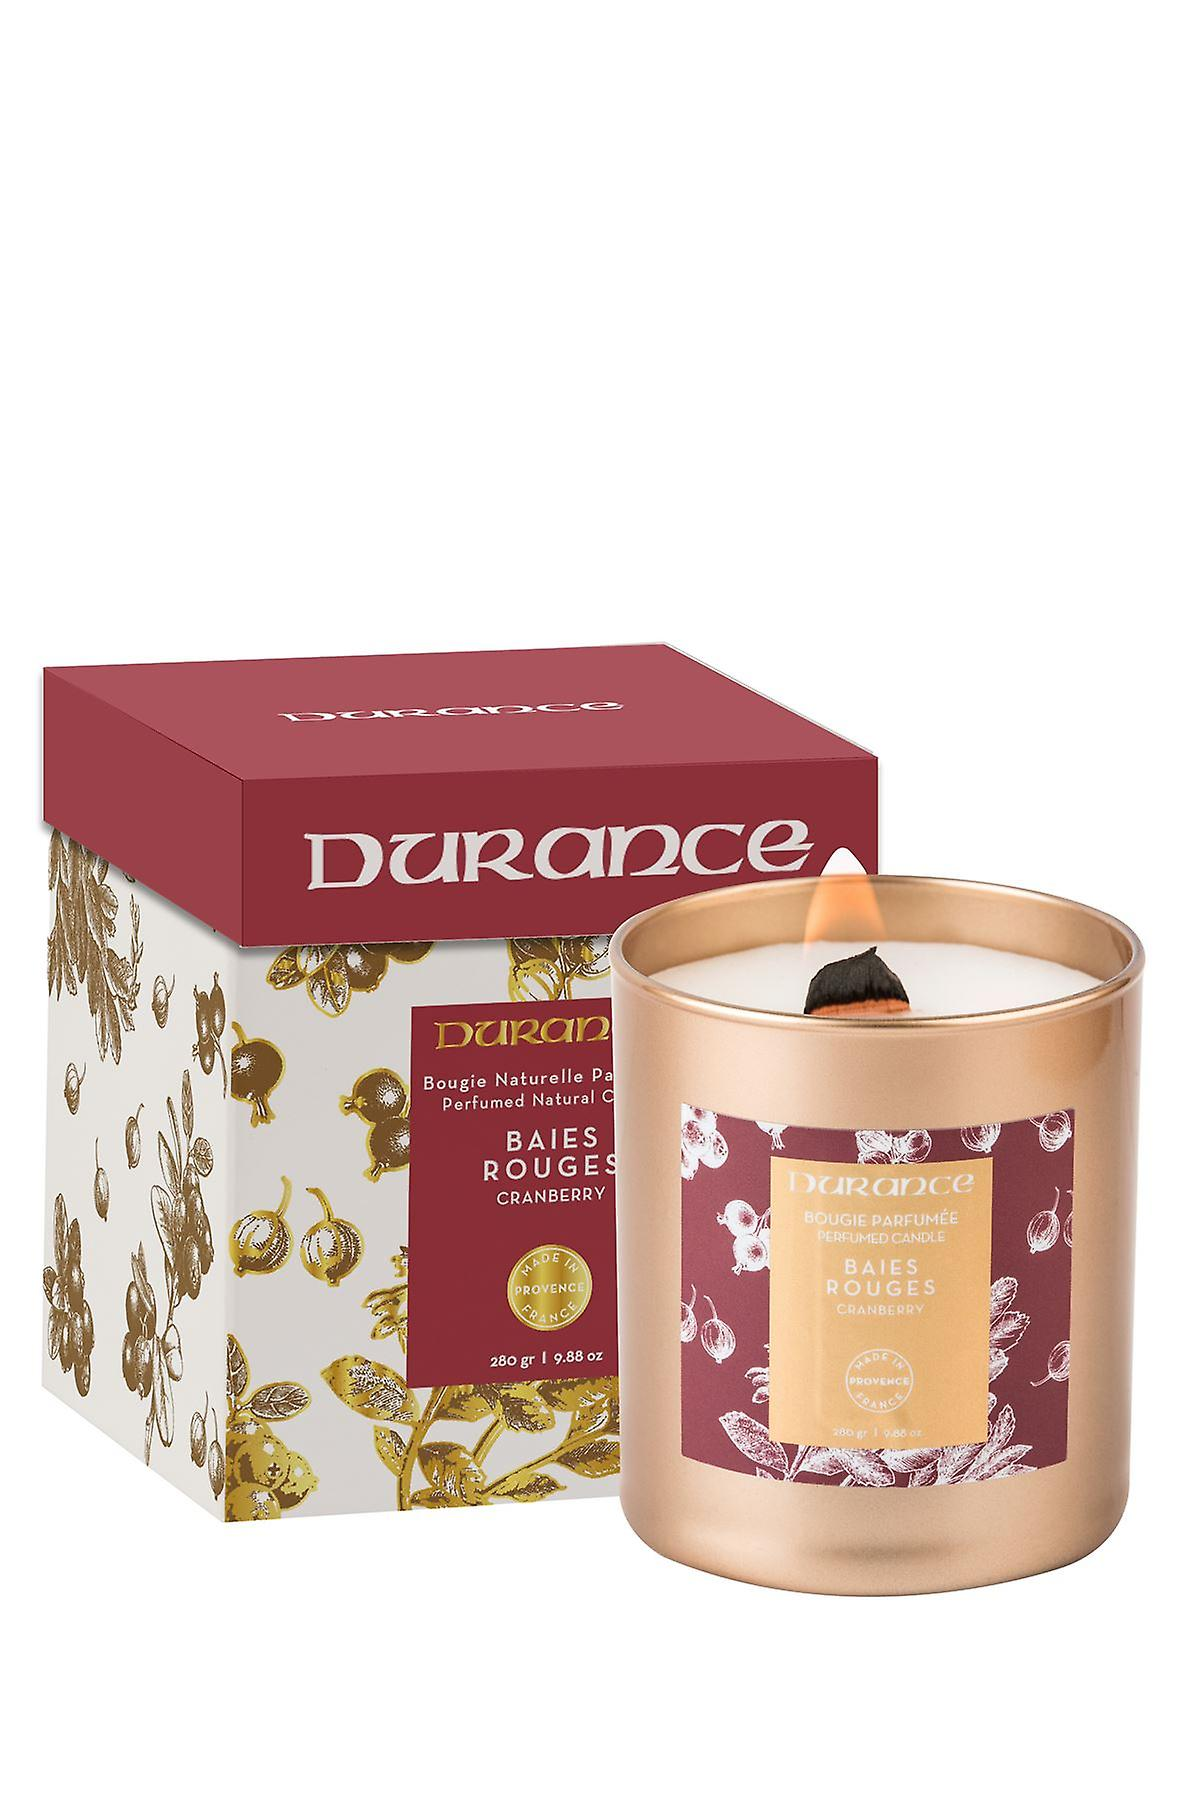 Durance Perfumed Wooden Wick Candle 280g - Cranberry